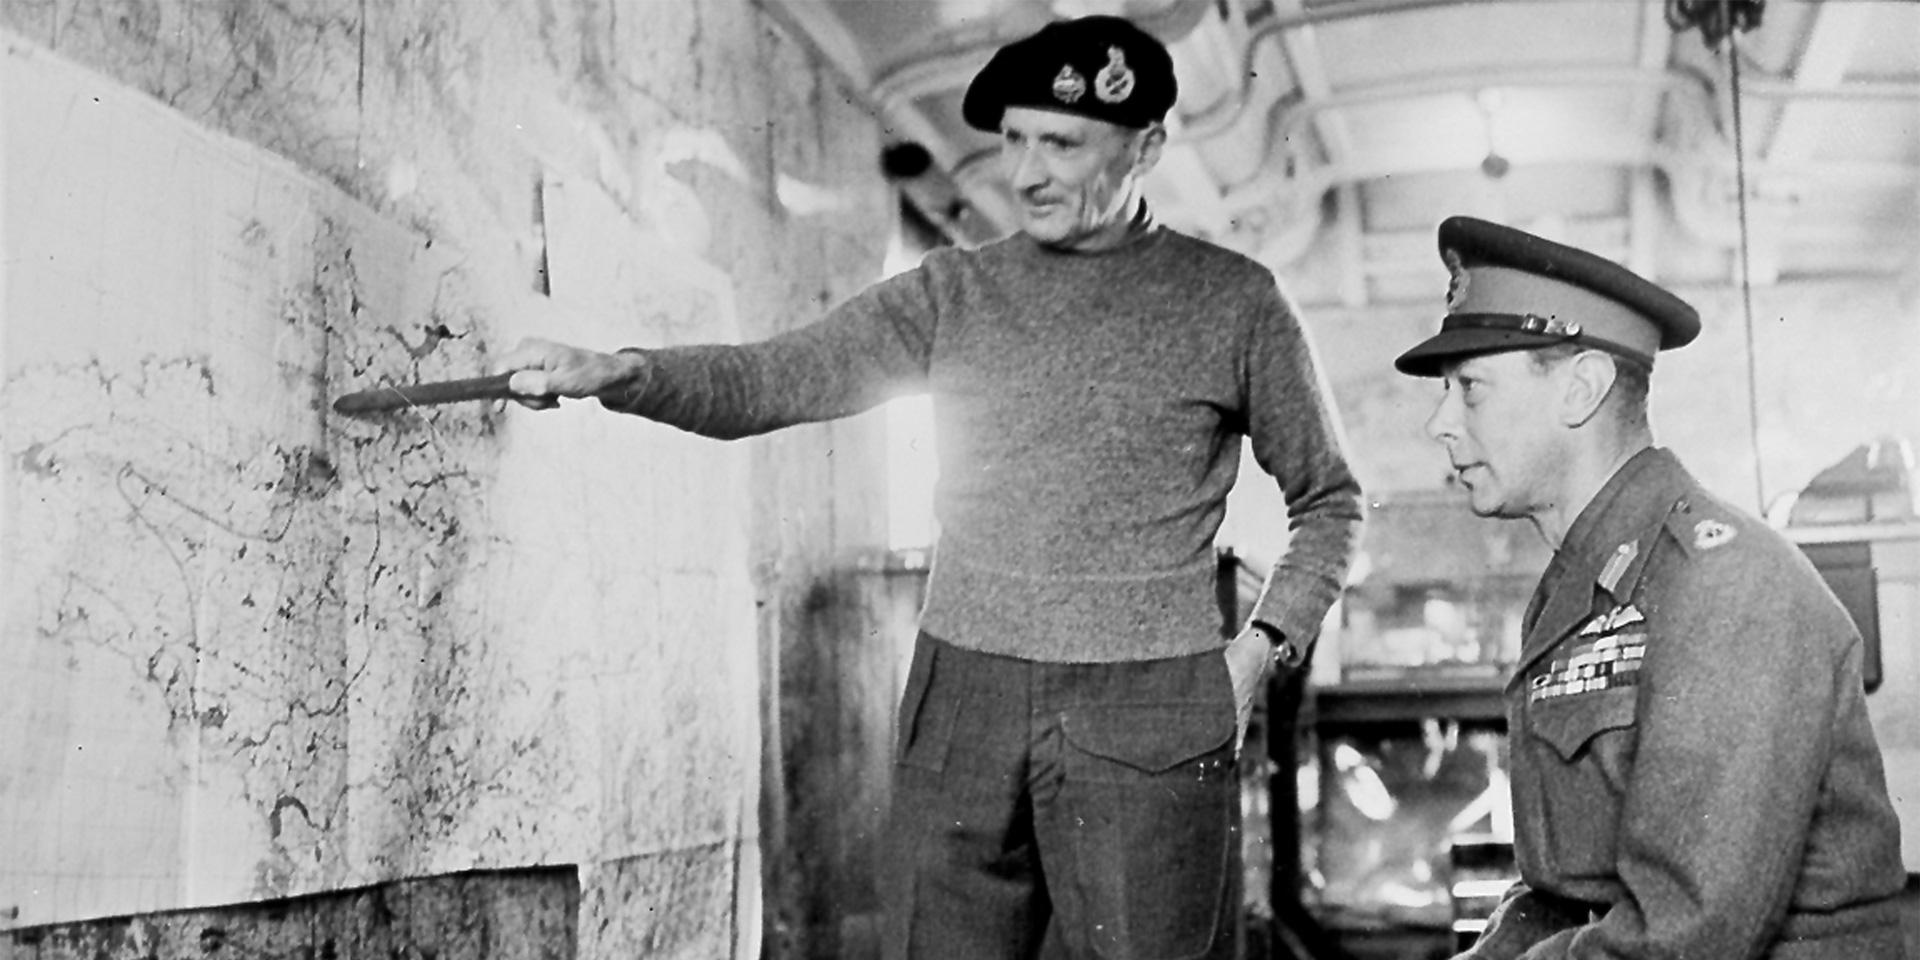 Montgomery explaining his plans to King George VI inside Monty's map caravan in 1944